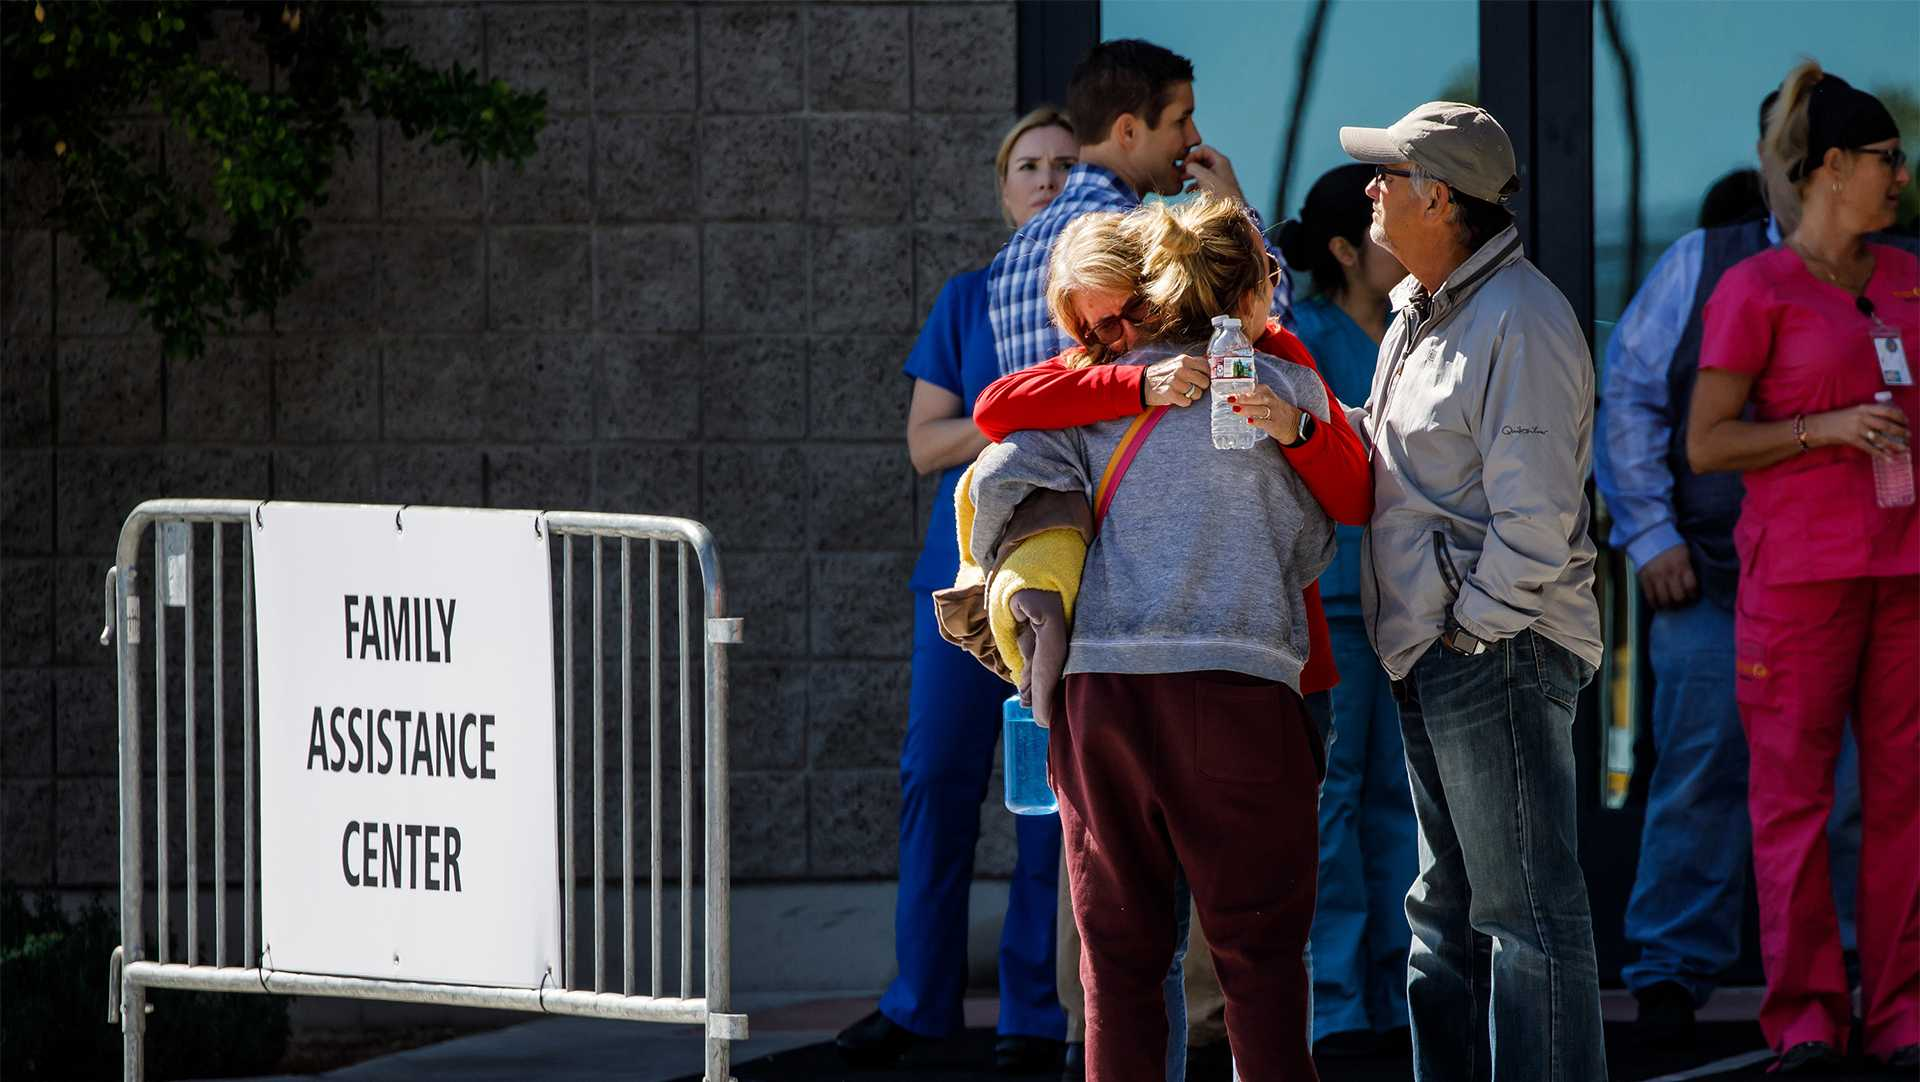 Family members of victims of the recent mass shooting that killed more than 50 and injured more than 500 console each other outside a family assistance center on Oct. 2, 2017 in Las Vegas, Nev. (Marcus Yam/Los Angeles Times/TNS)